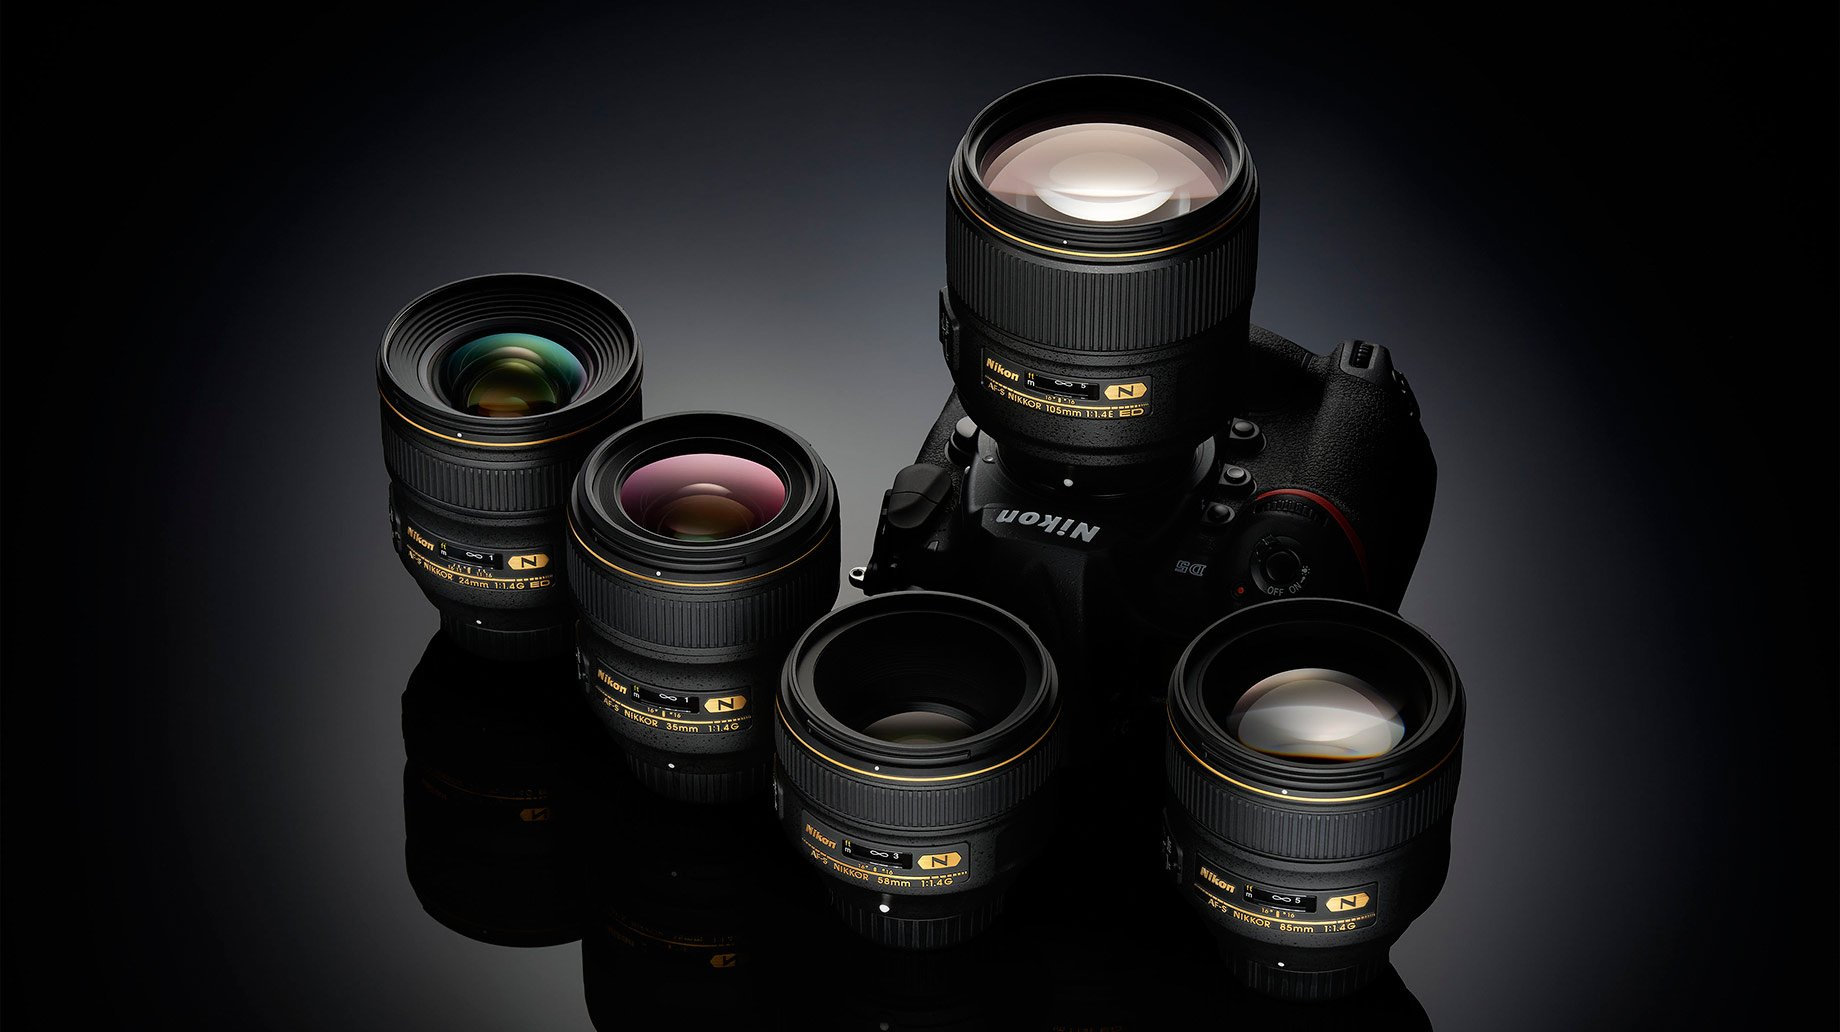 nikon_nikkor_afs_105mm_f1_4e_nanocrystal_primelenses--original.jpg